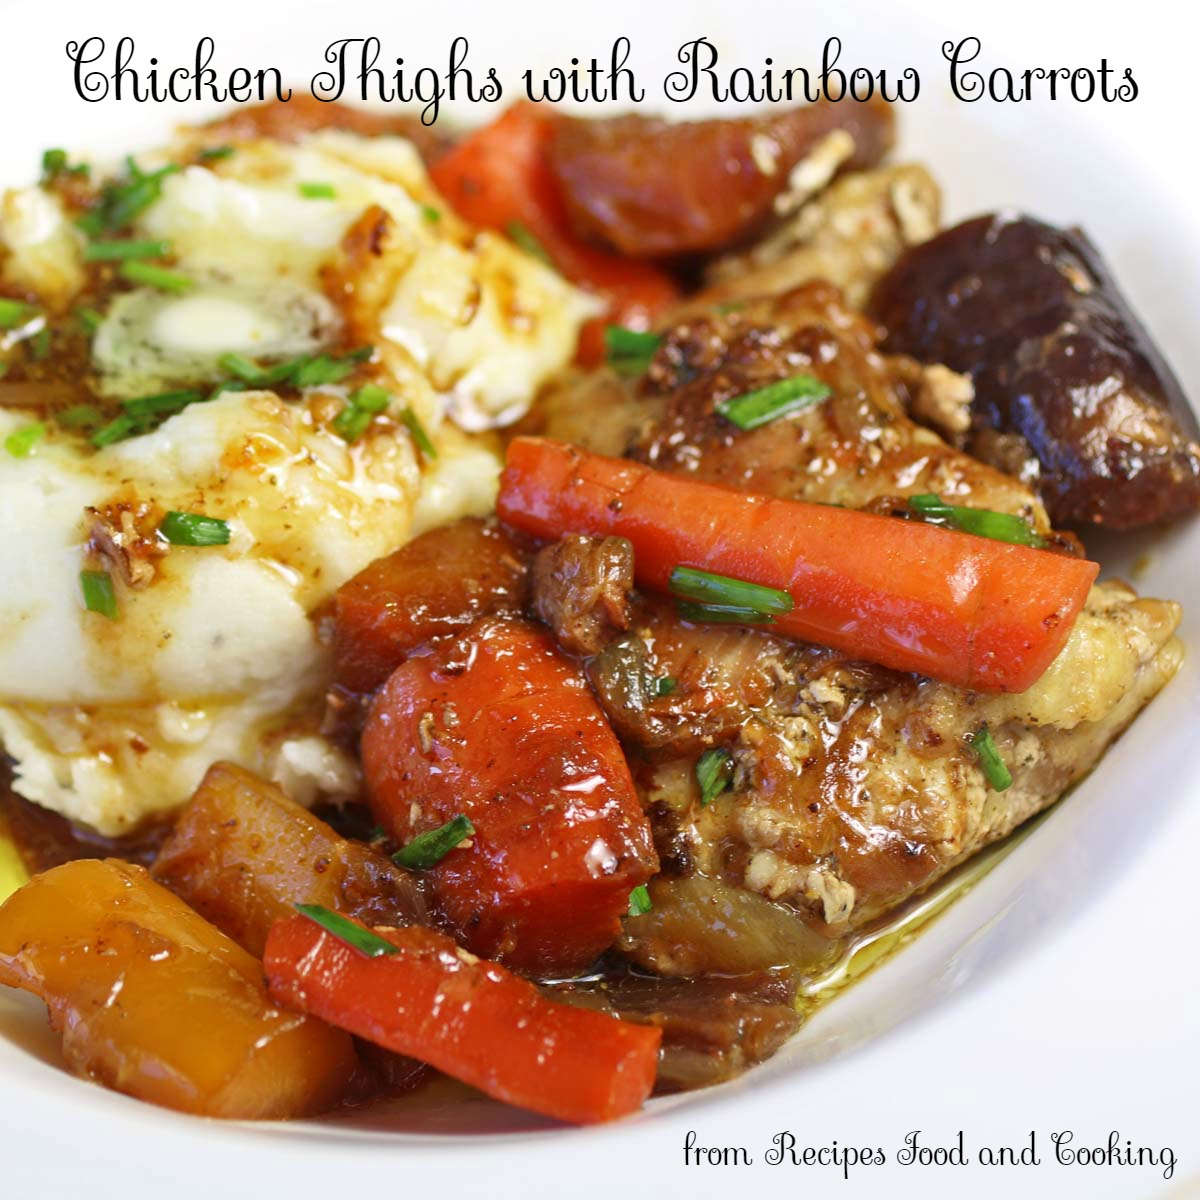 Chicken Thighs with Rainbow Carrots